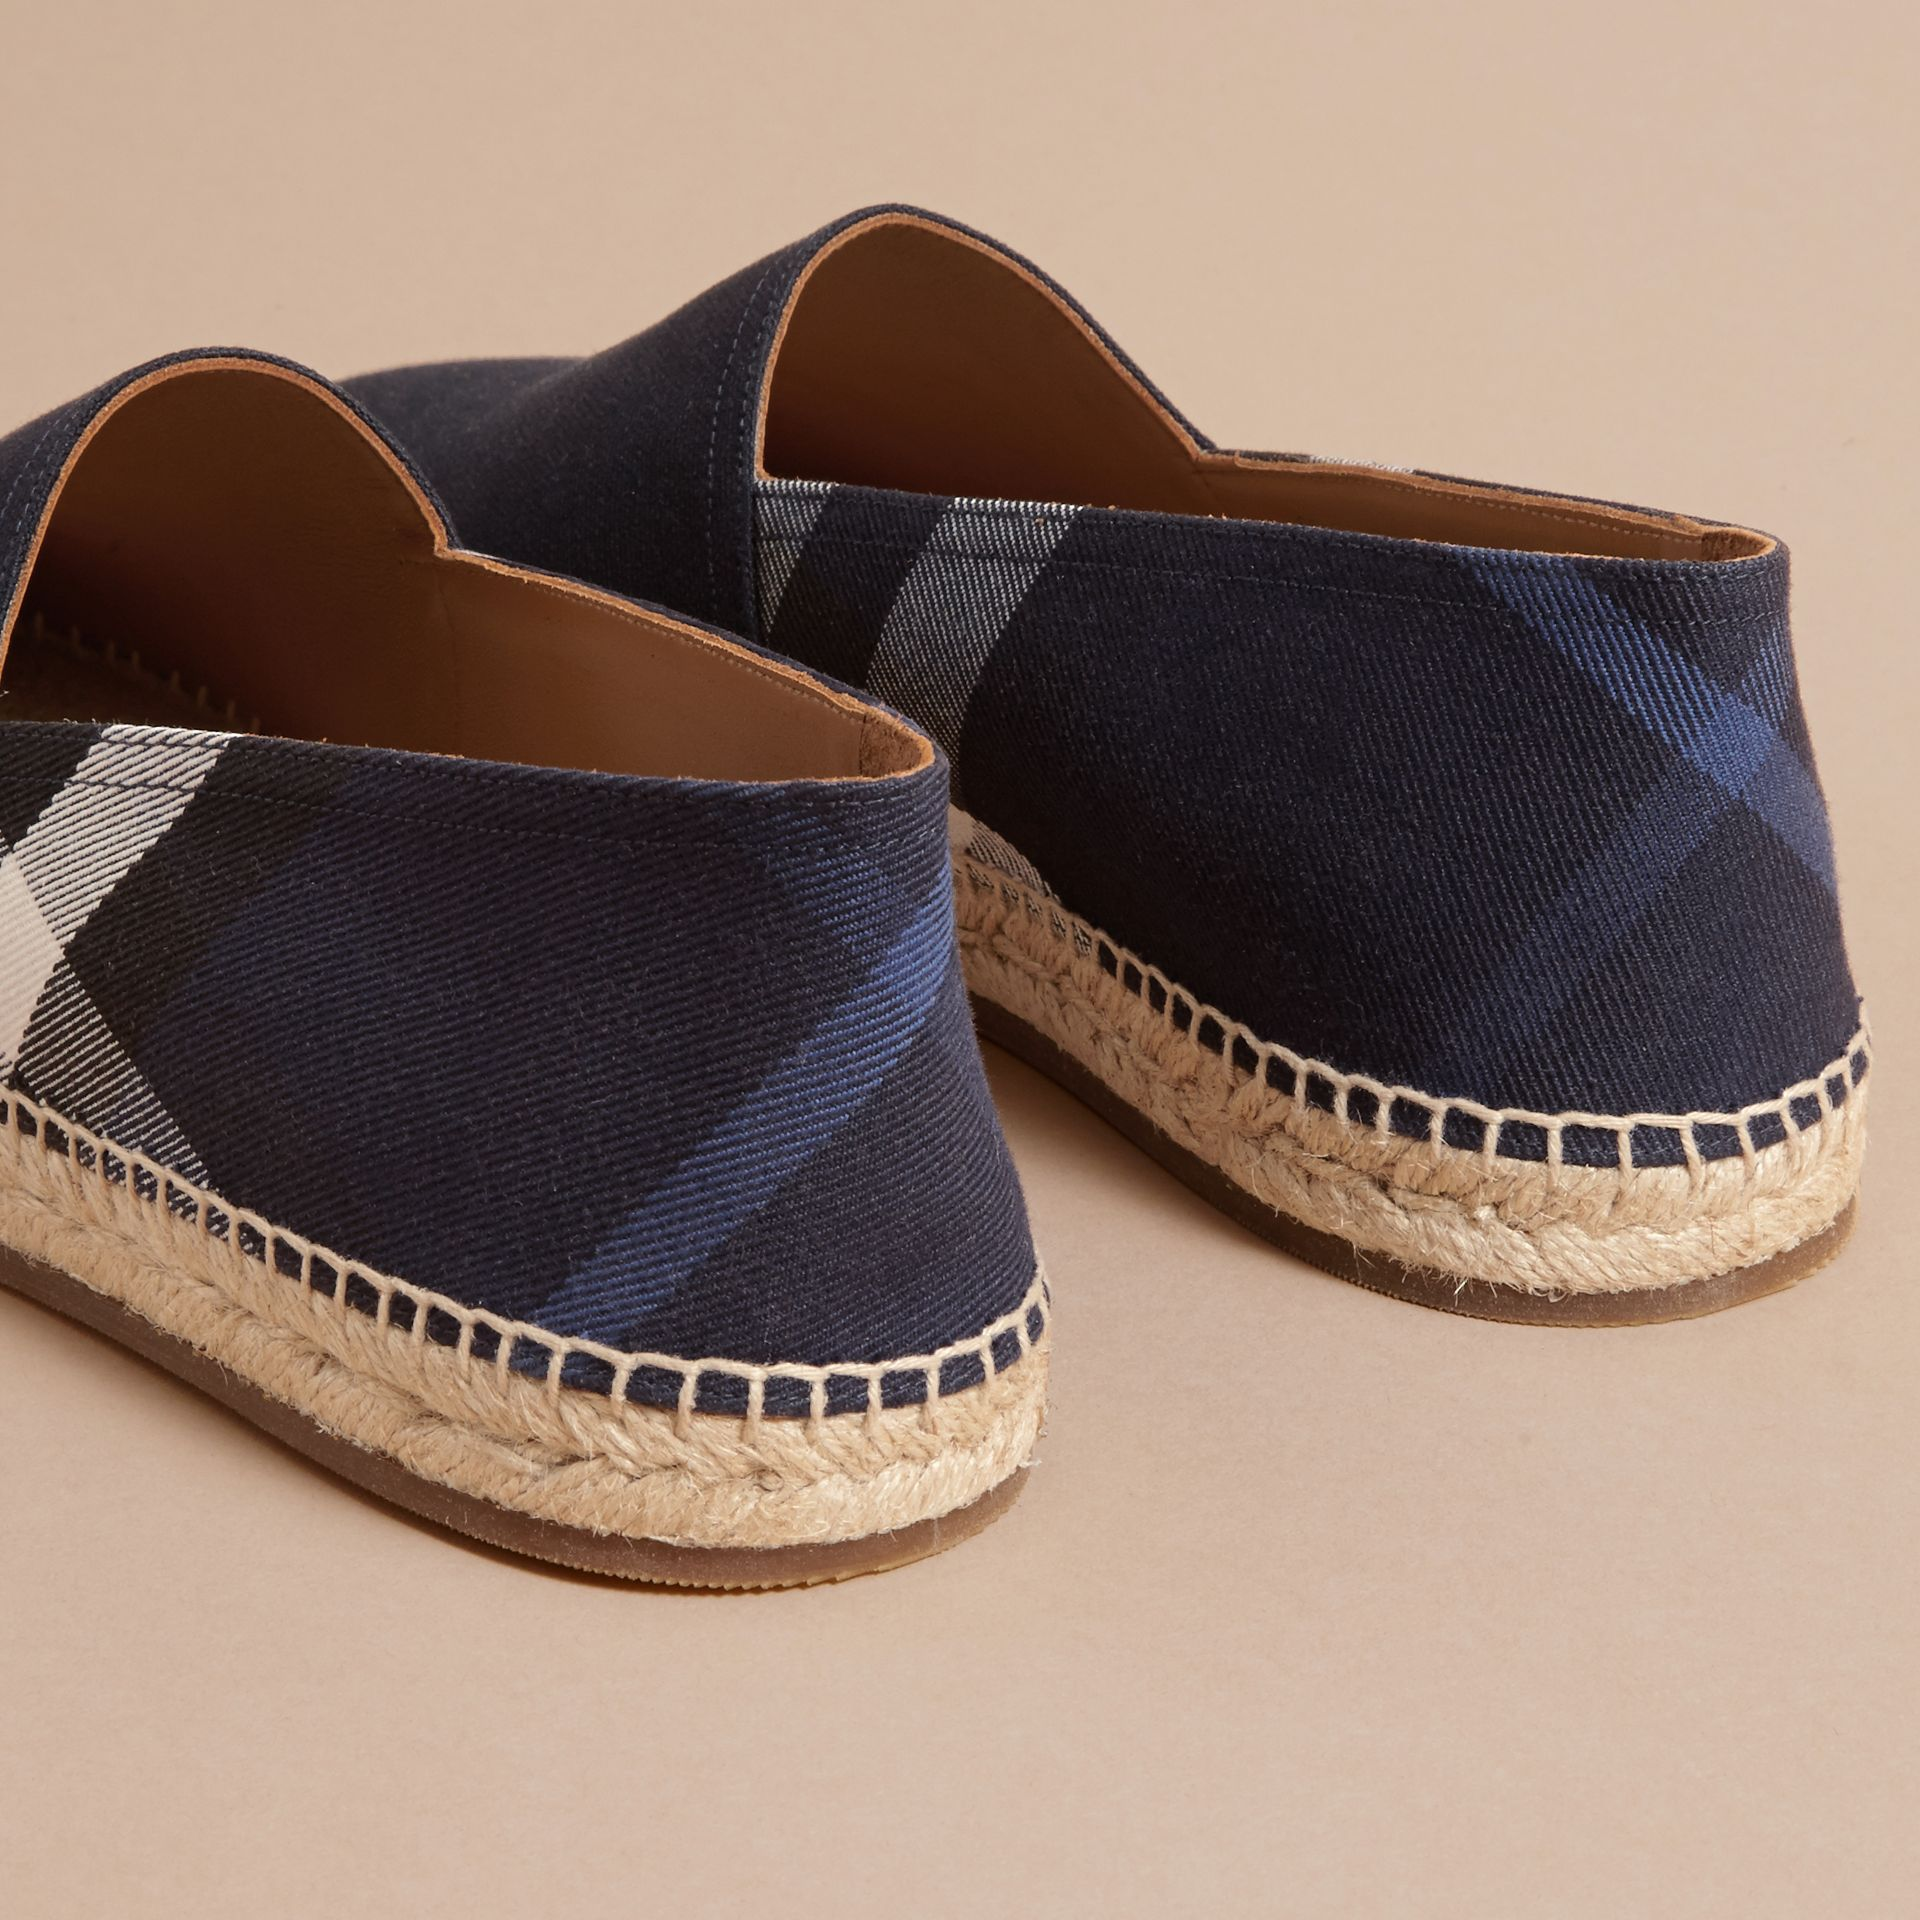 Overdyed House Check and Cotton Canvas Espadrilles - Men | Burberry - gallery image 4